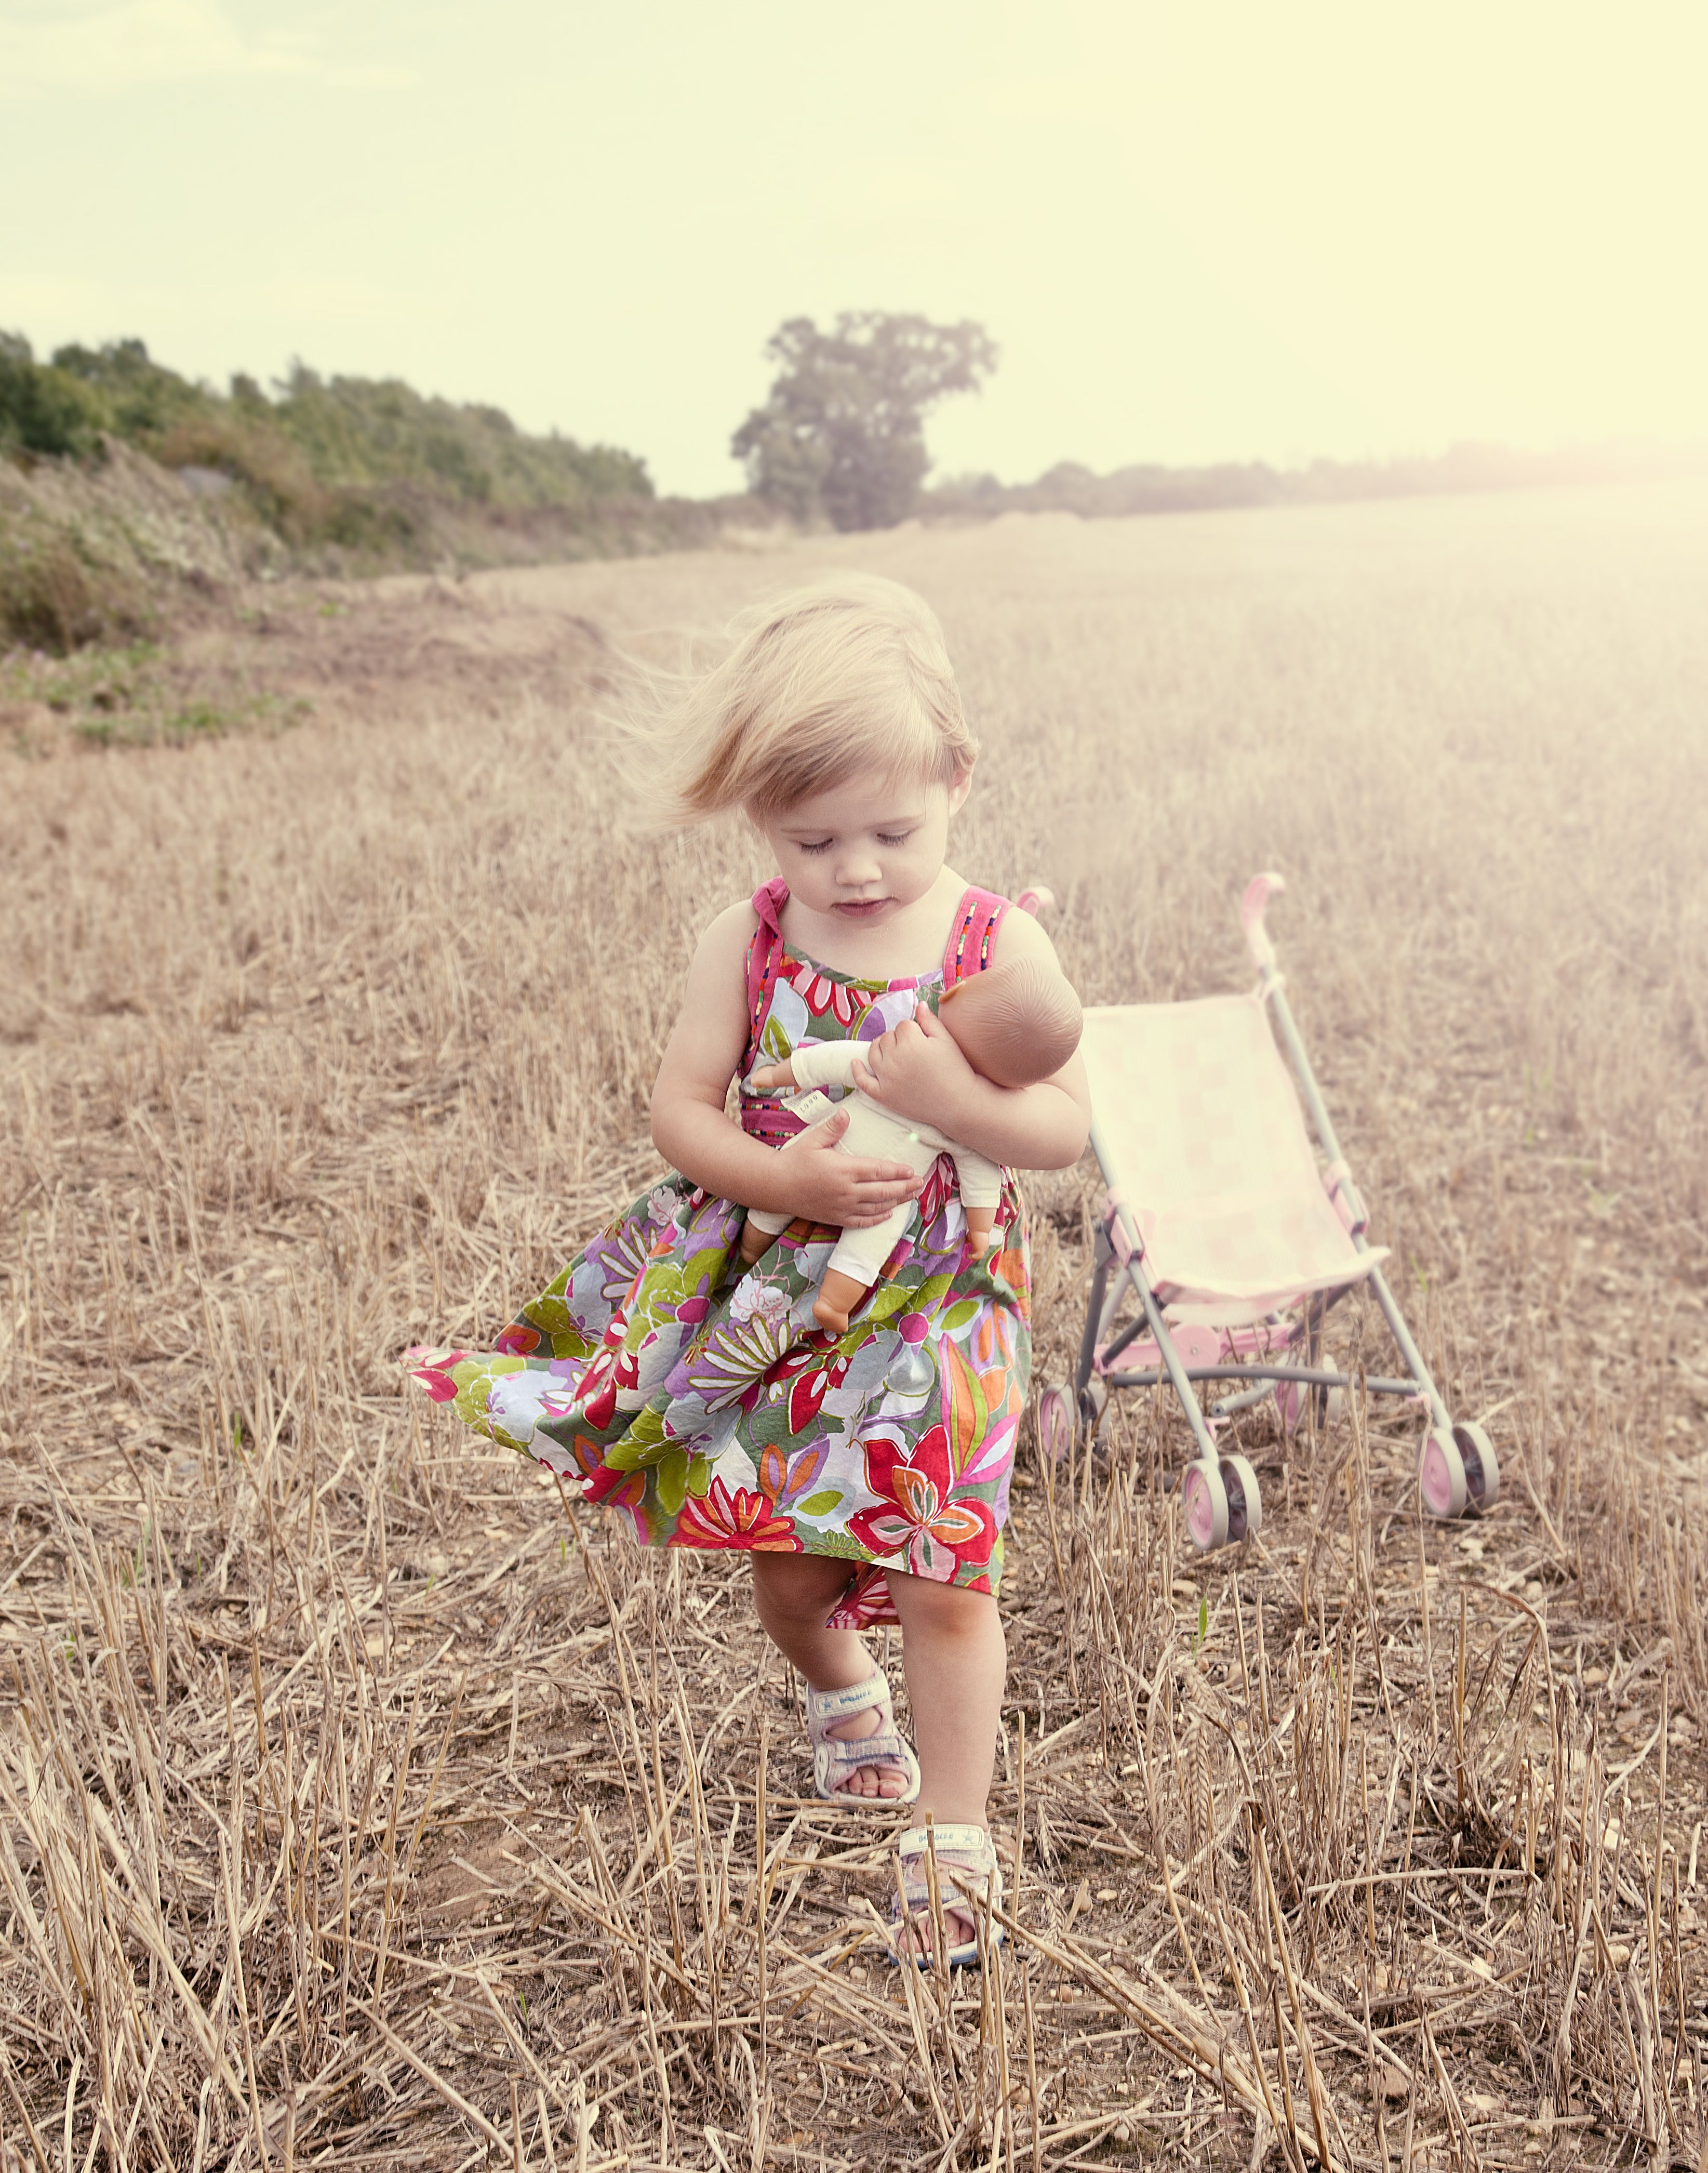 cute child / kid portrait I took of my niece playing with doll in a field near my home.